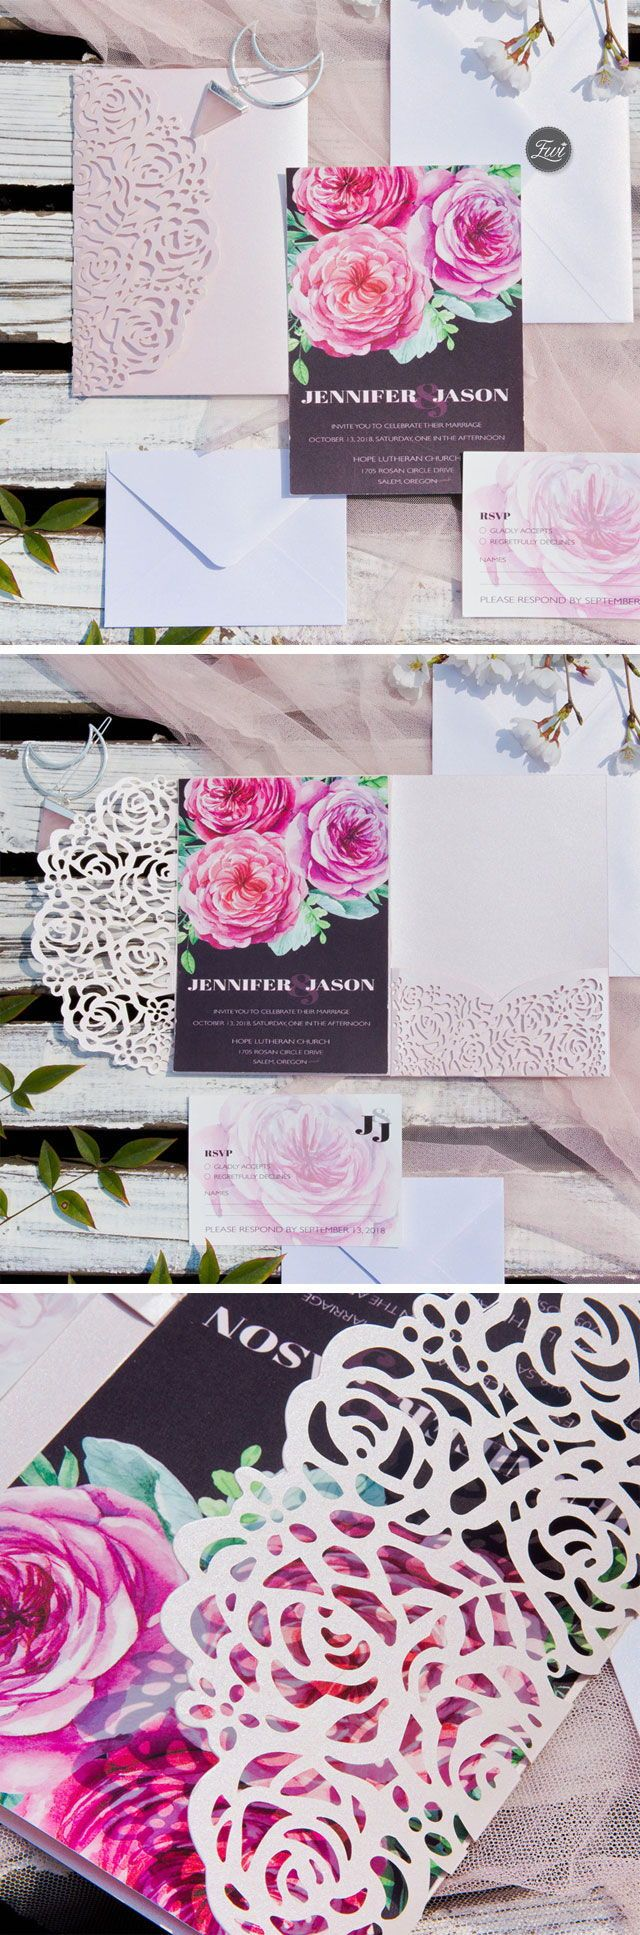 Wedding decorations table october 2018 bursting with blooms u pink floral inspired invitation with blush